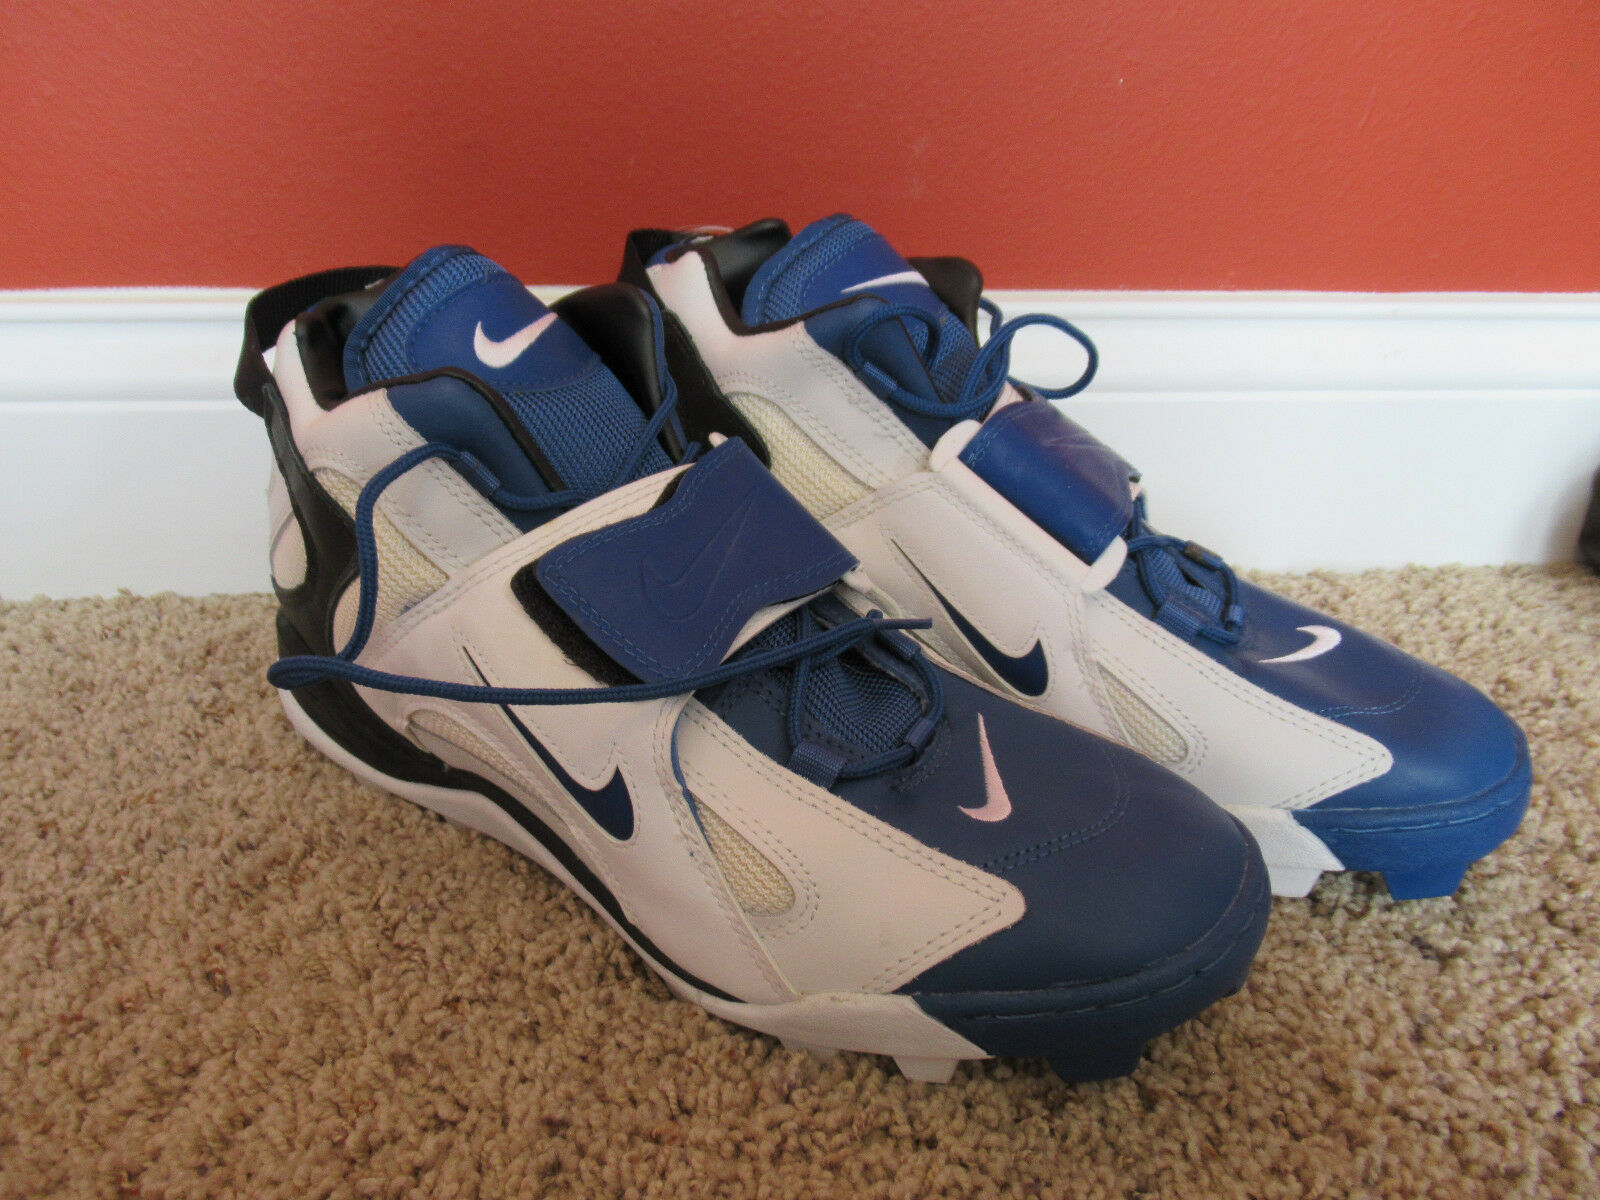 Wild casual shoes Vintage Nike Air Blue White football cleats mens size 14 UNUSED EXCELLENT!!